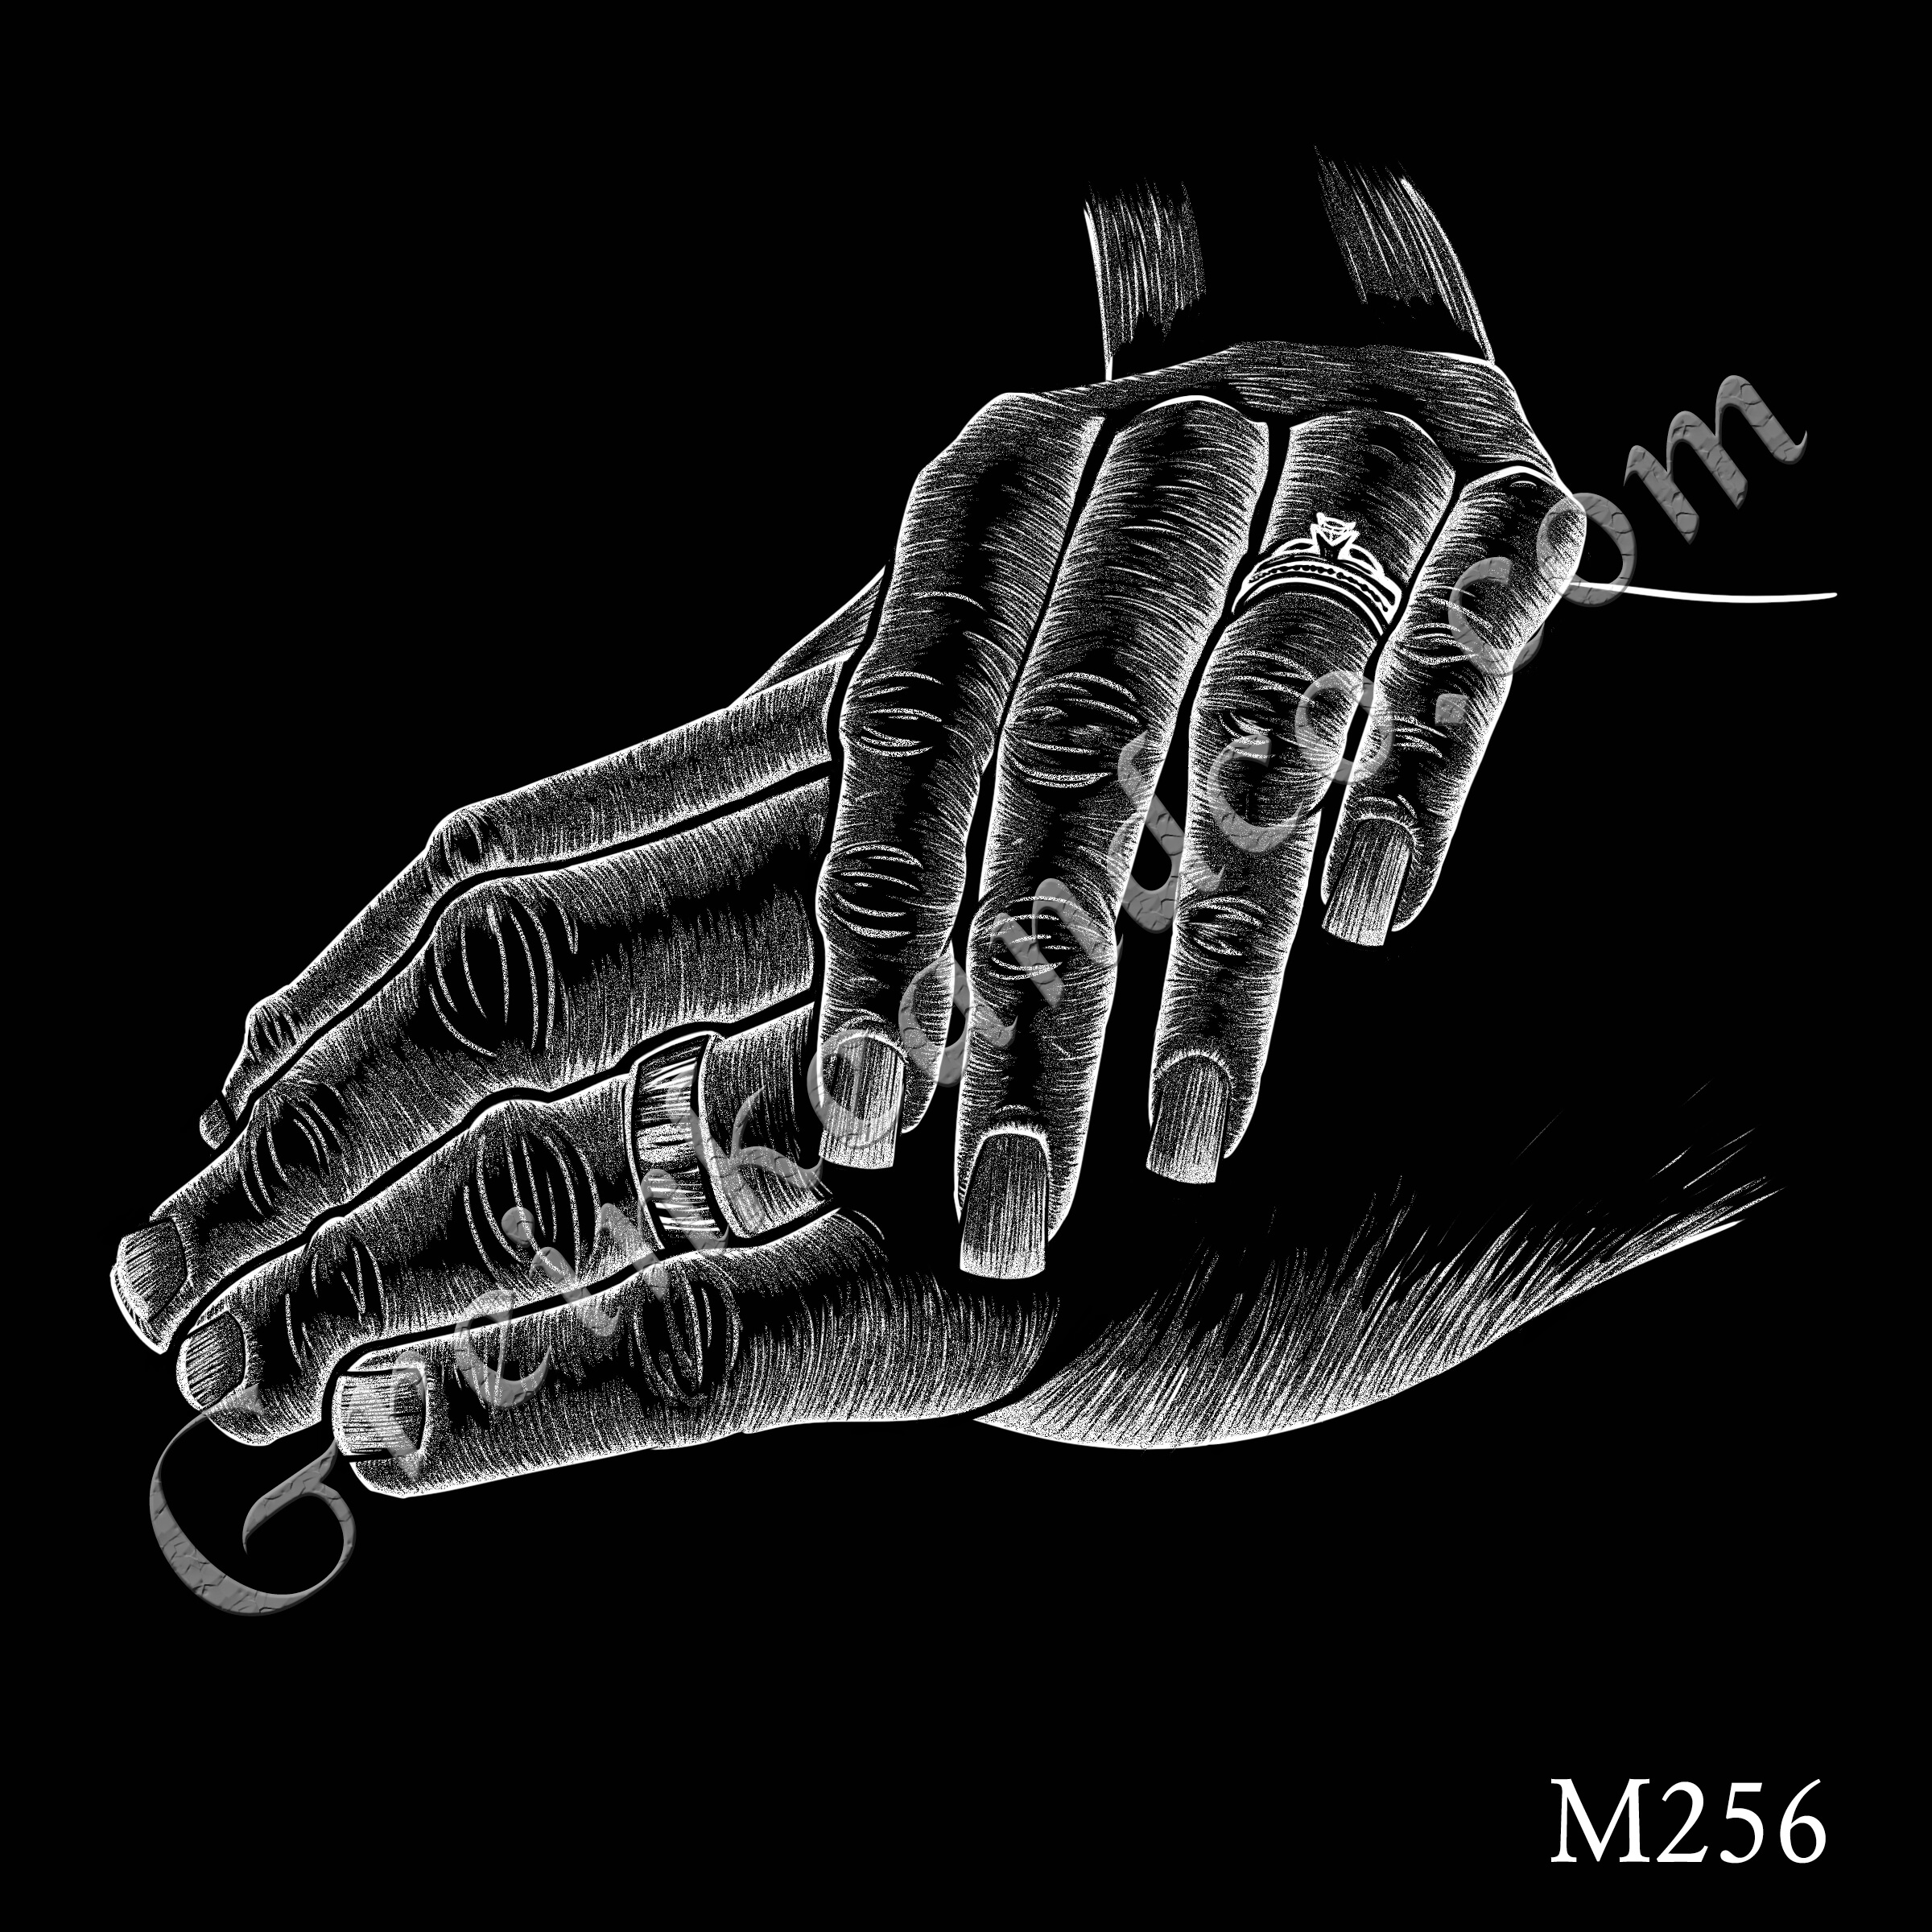 M256 - Holding Hands